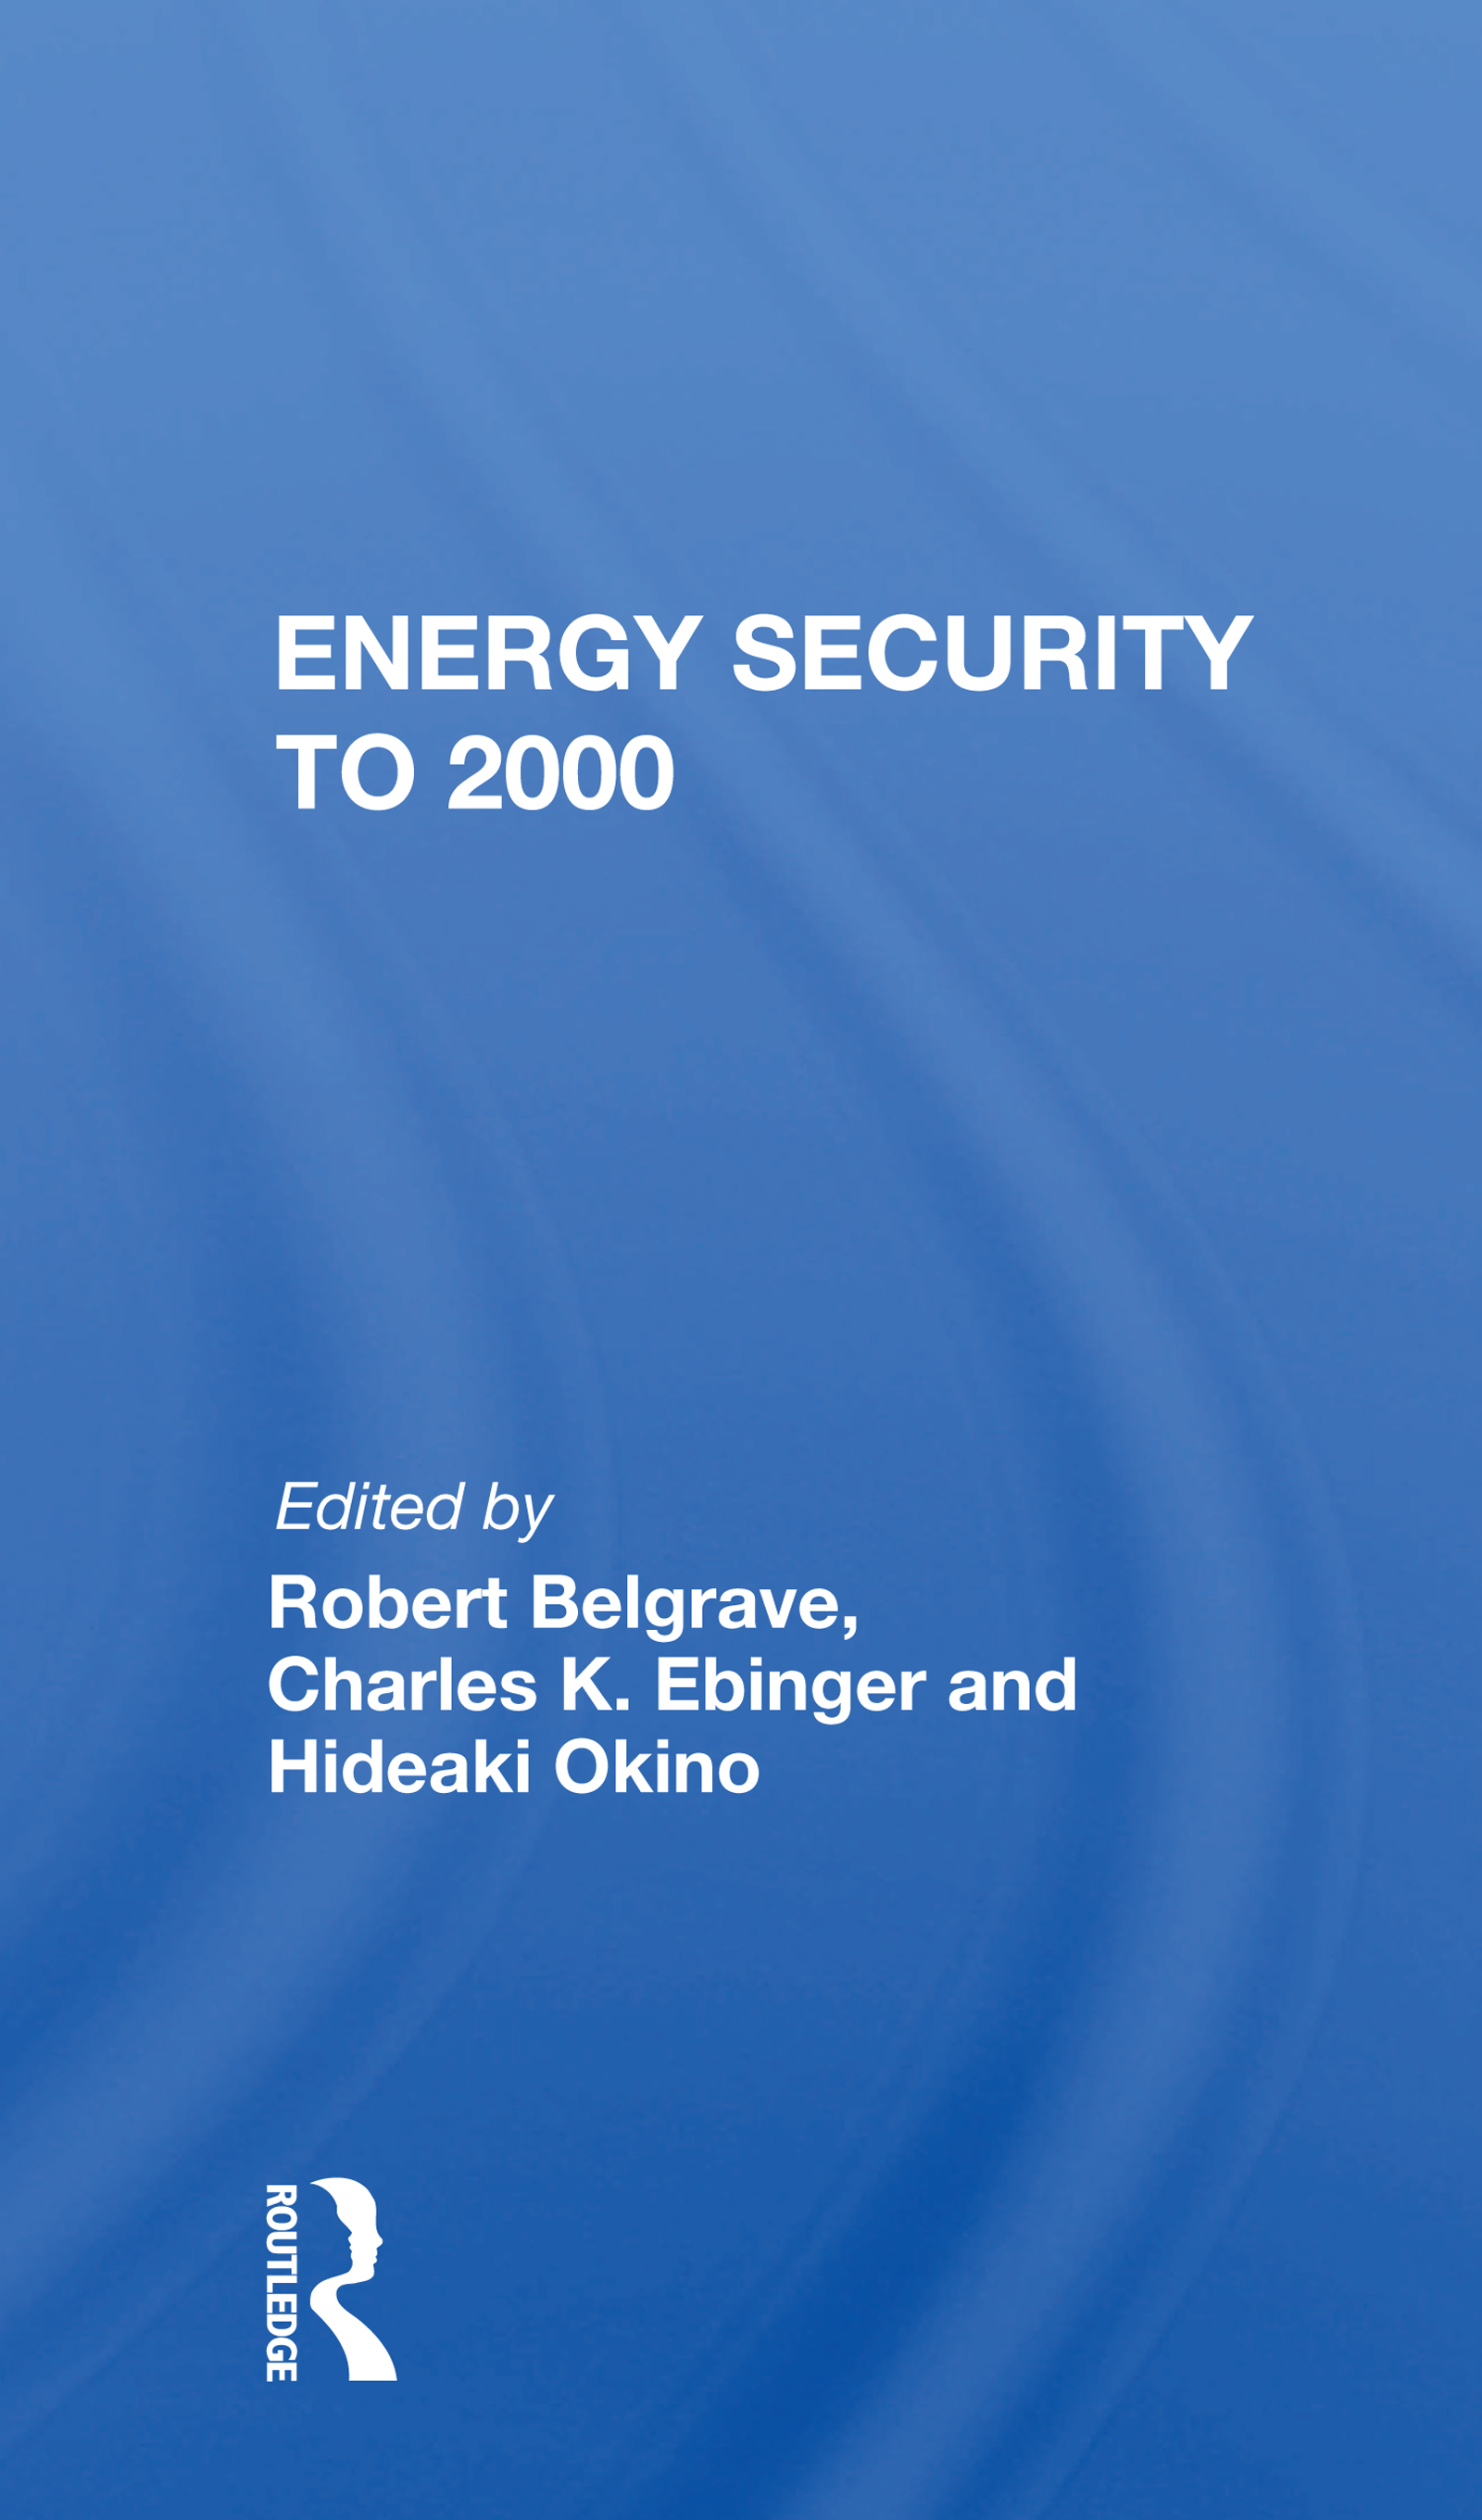 Energy Security To 2000